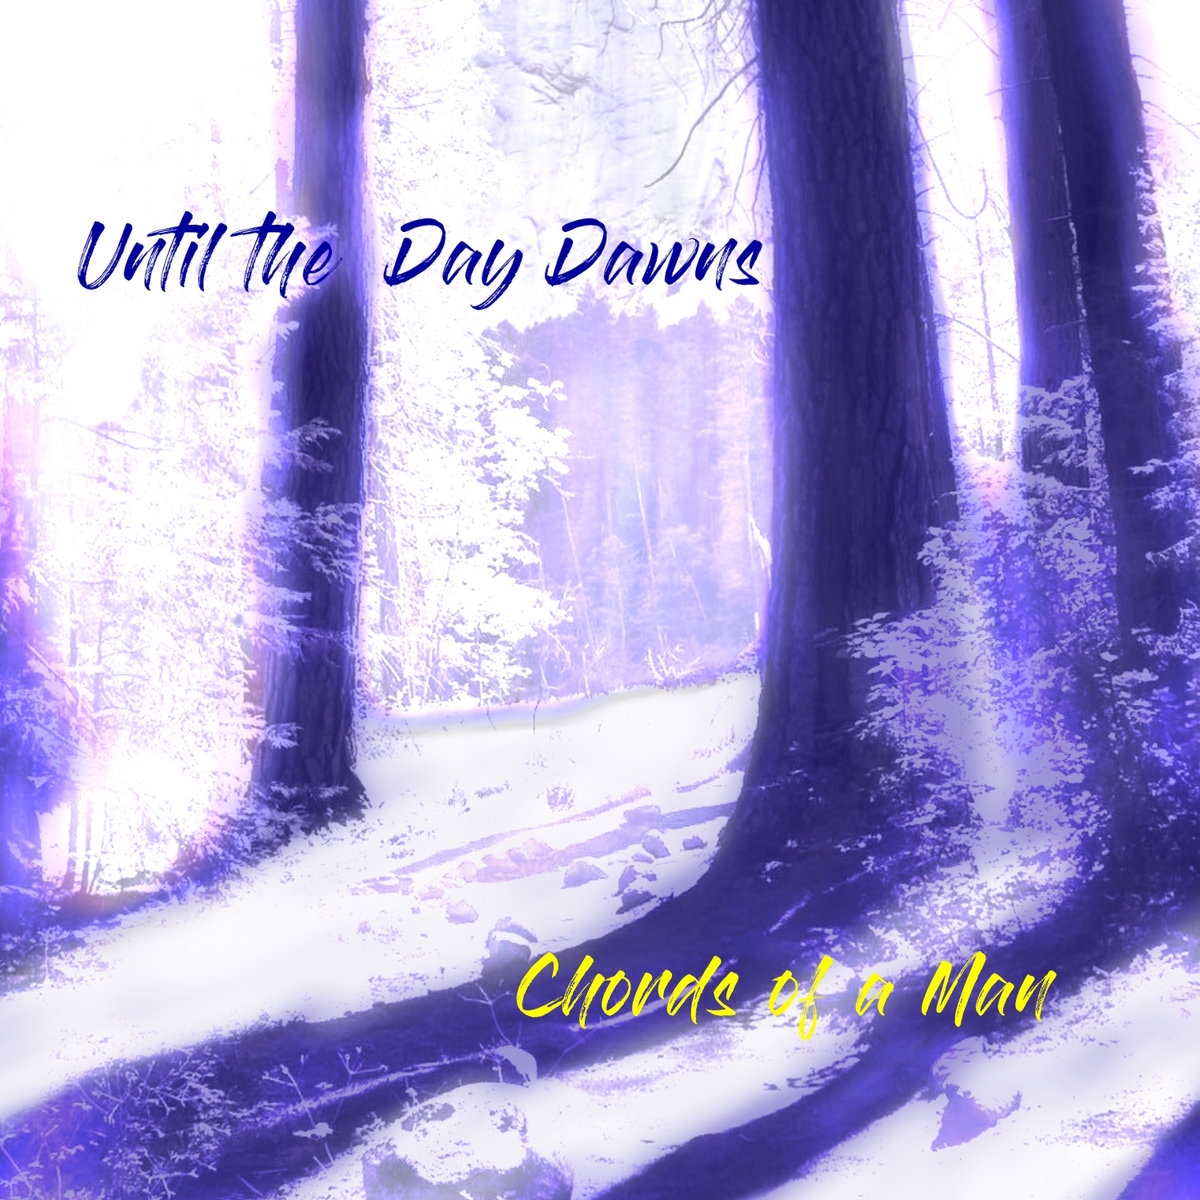 Until the day dawns chords of a man by chords of a man hexwebz Gallery